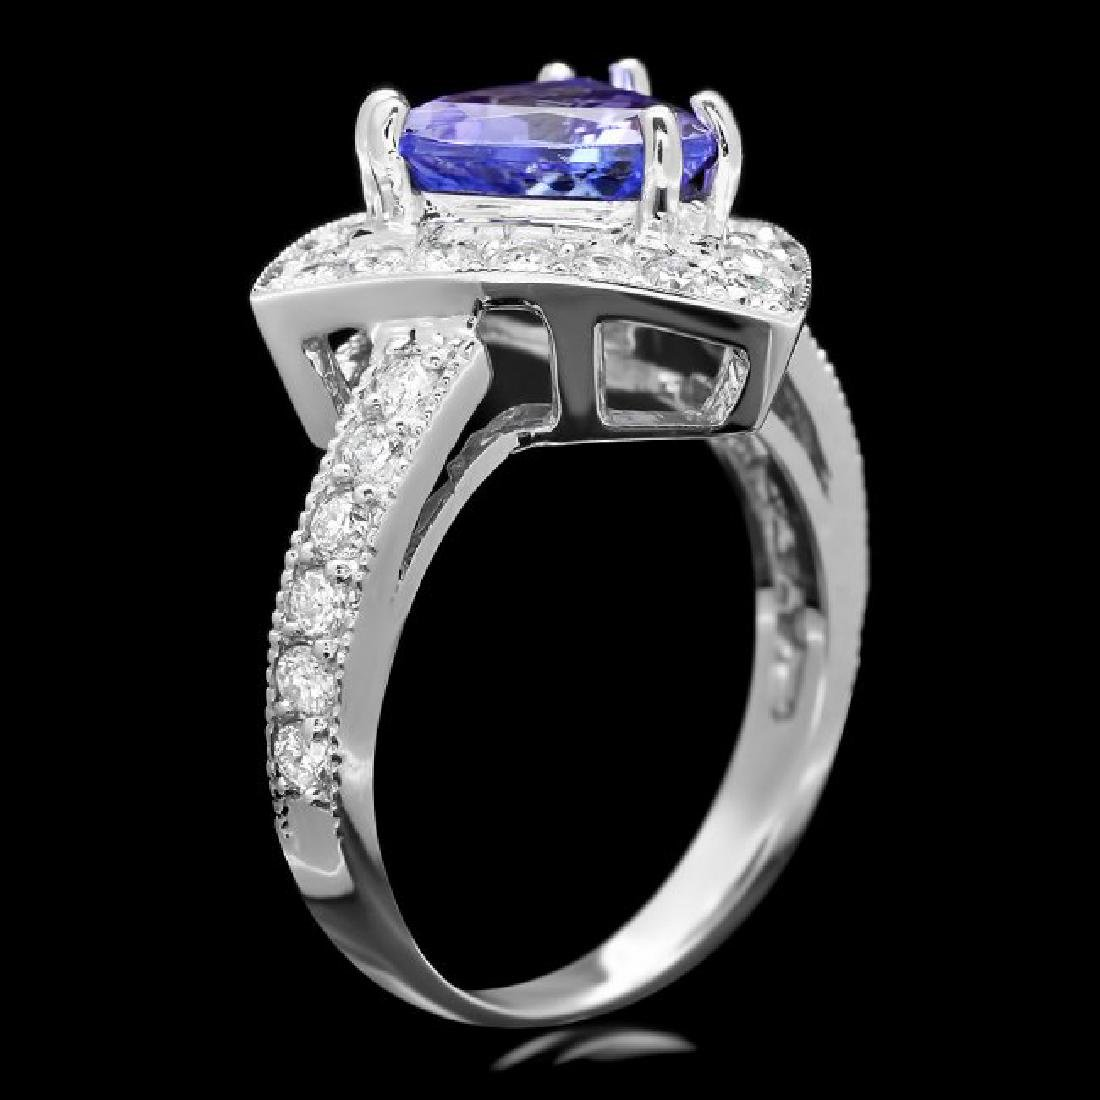 14k Gold 2.40ct Tanzanite 1.00ct Diamond Ring - 3